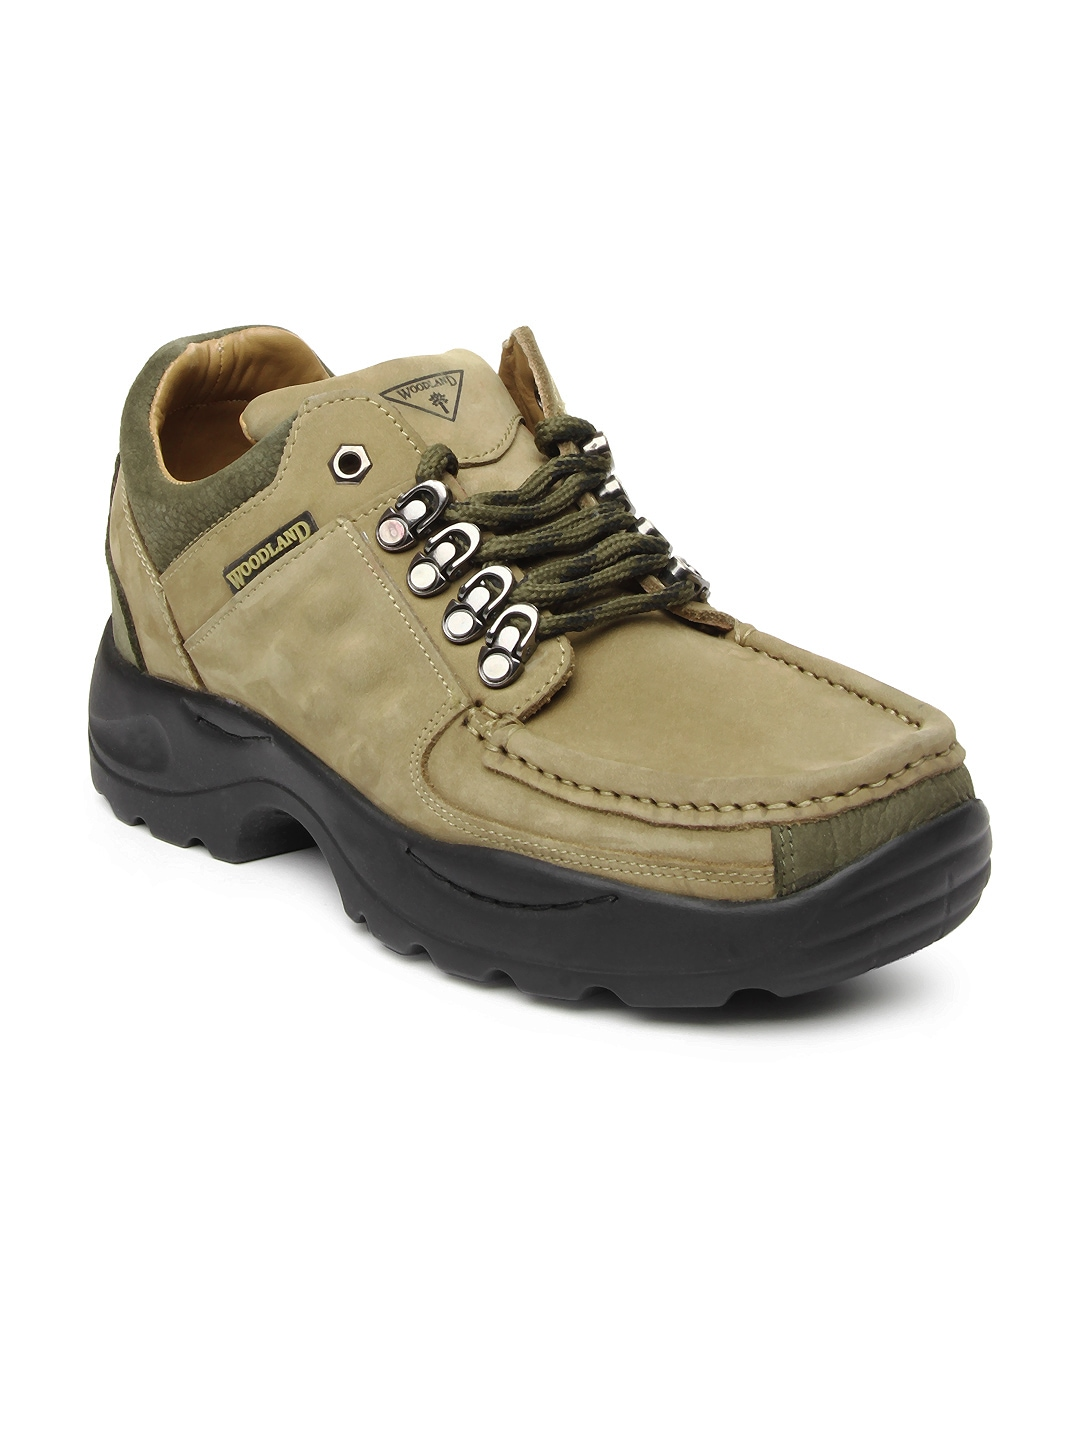 Woodland Party Wear Shoes